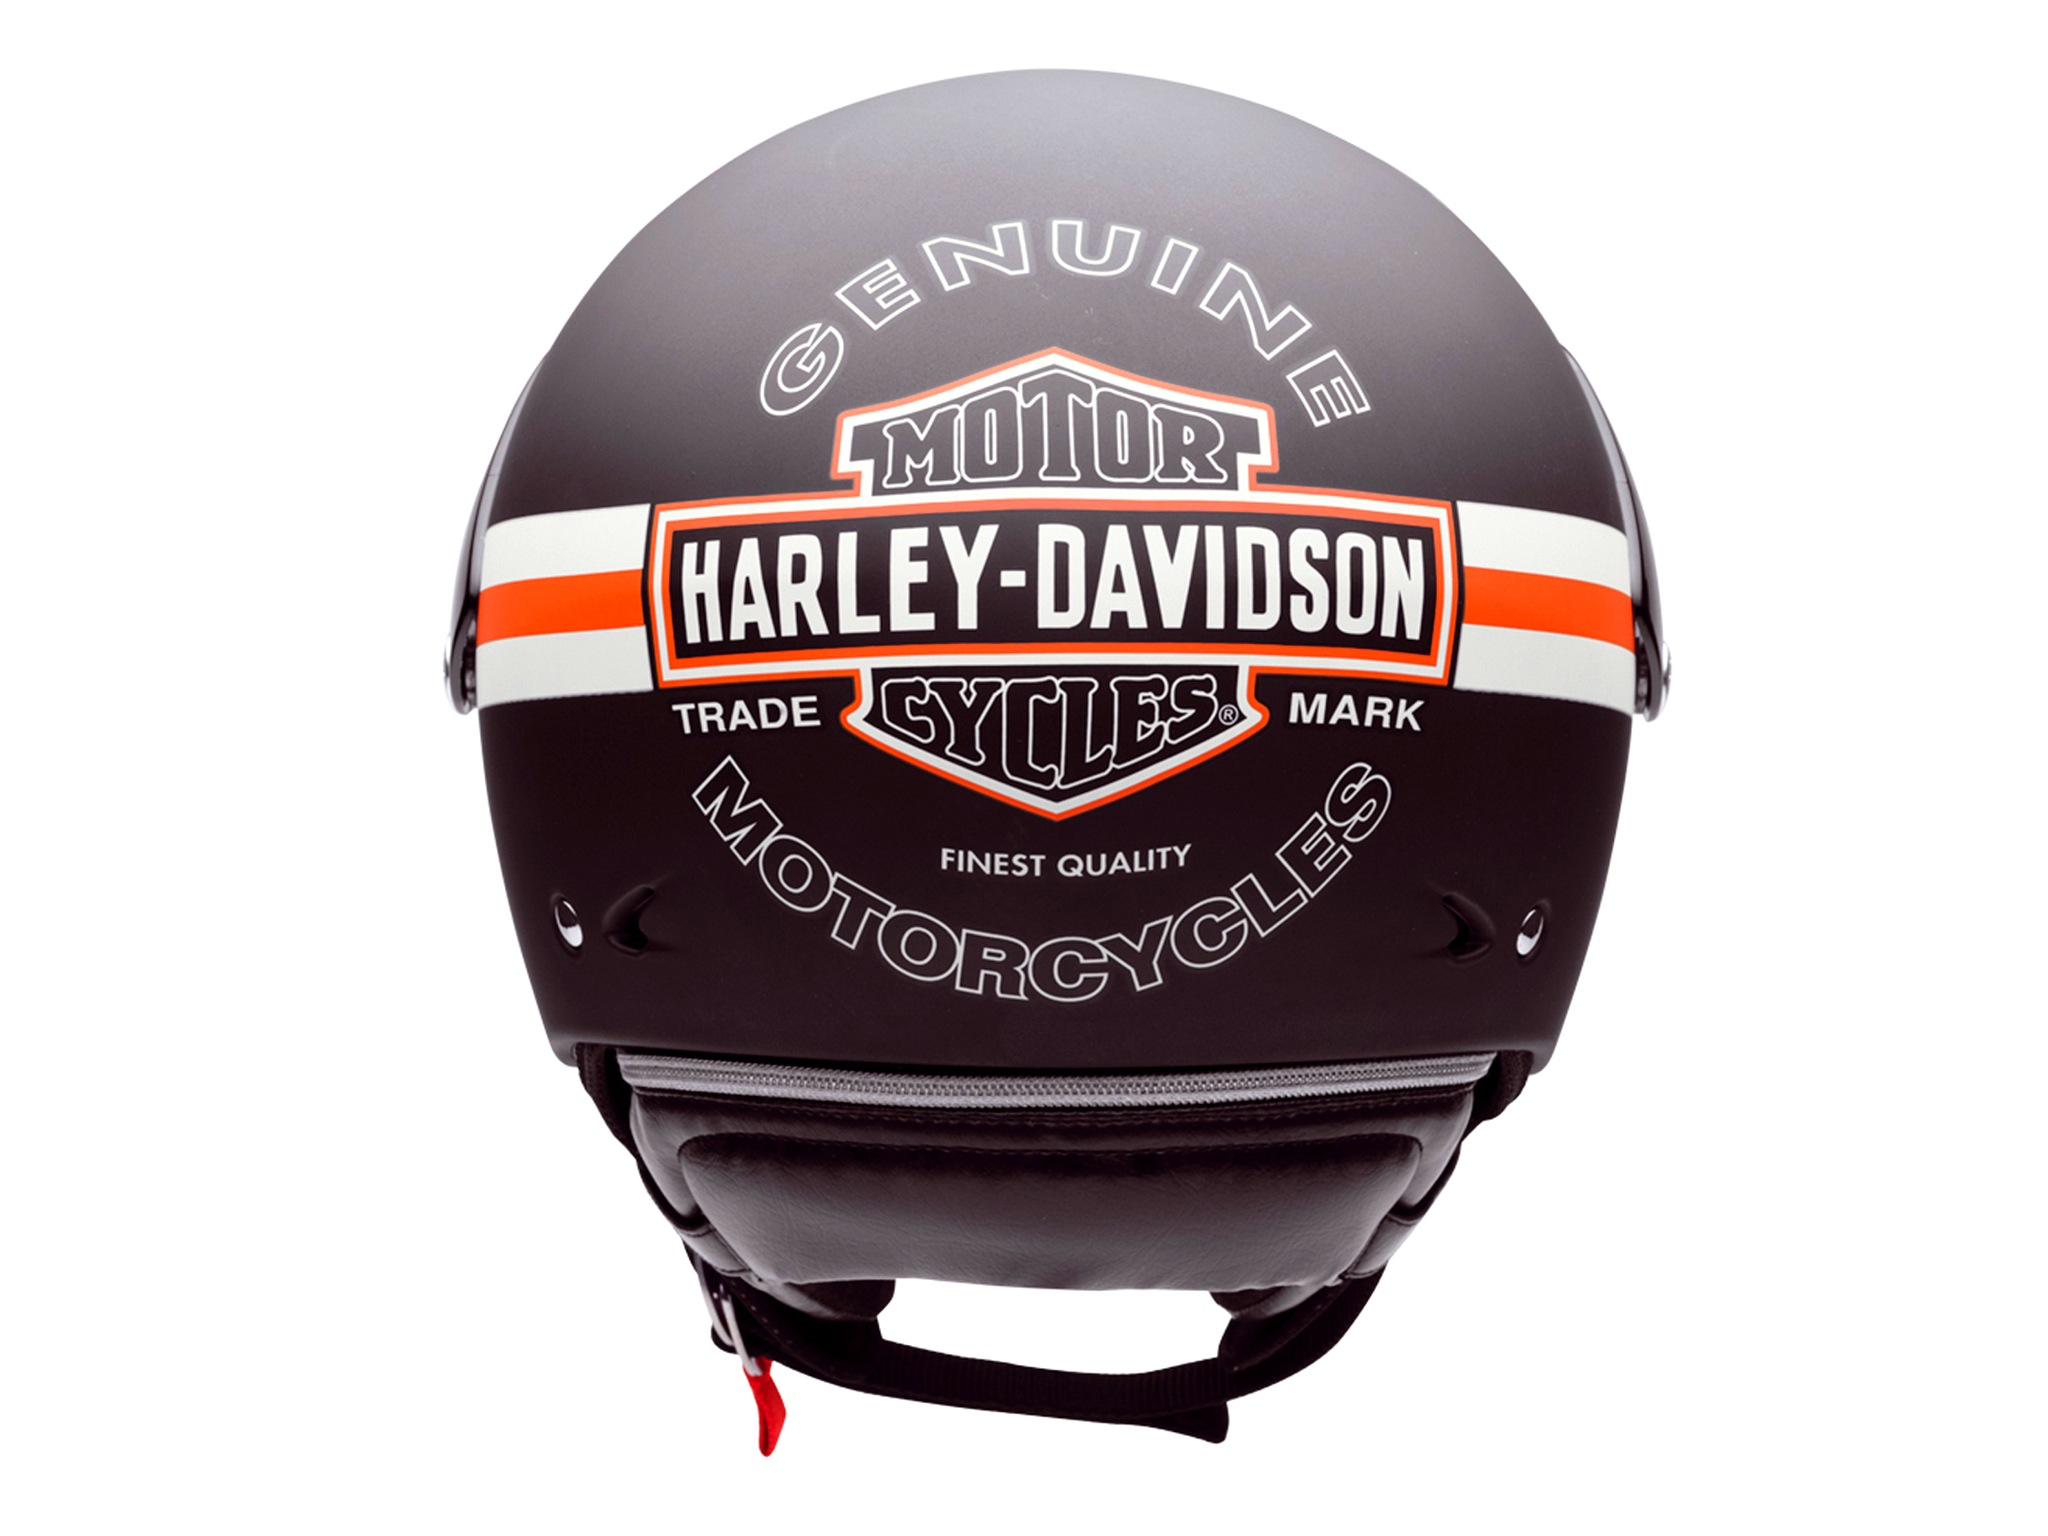 harley-davidson women's enthusiast helmet is yours for $150